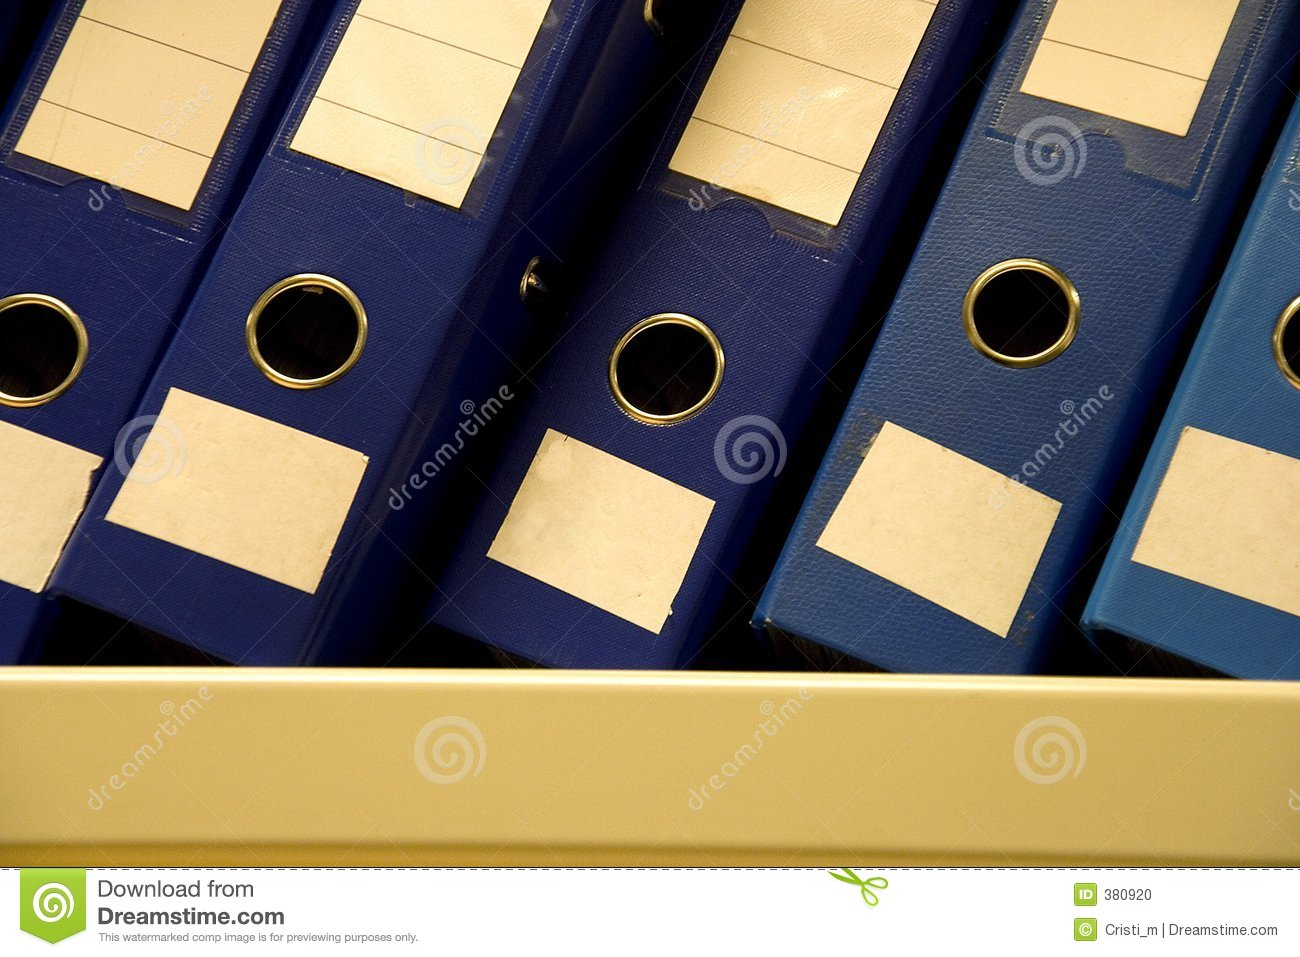 A row of files